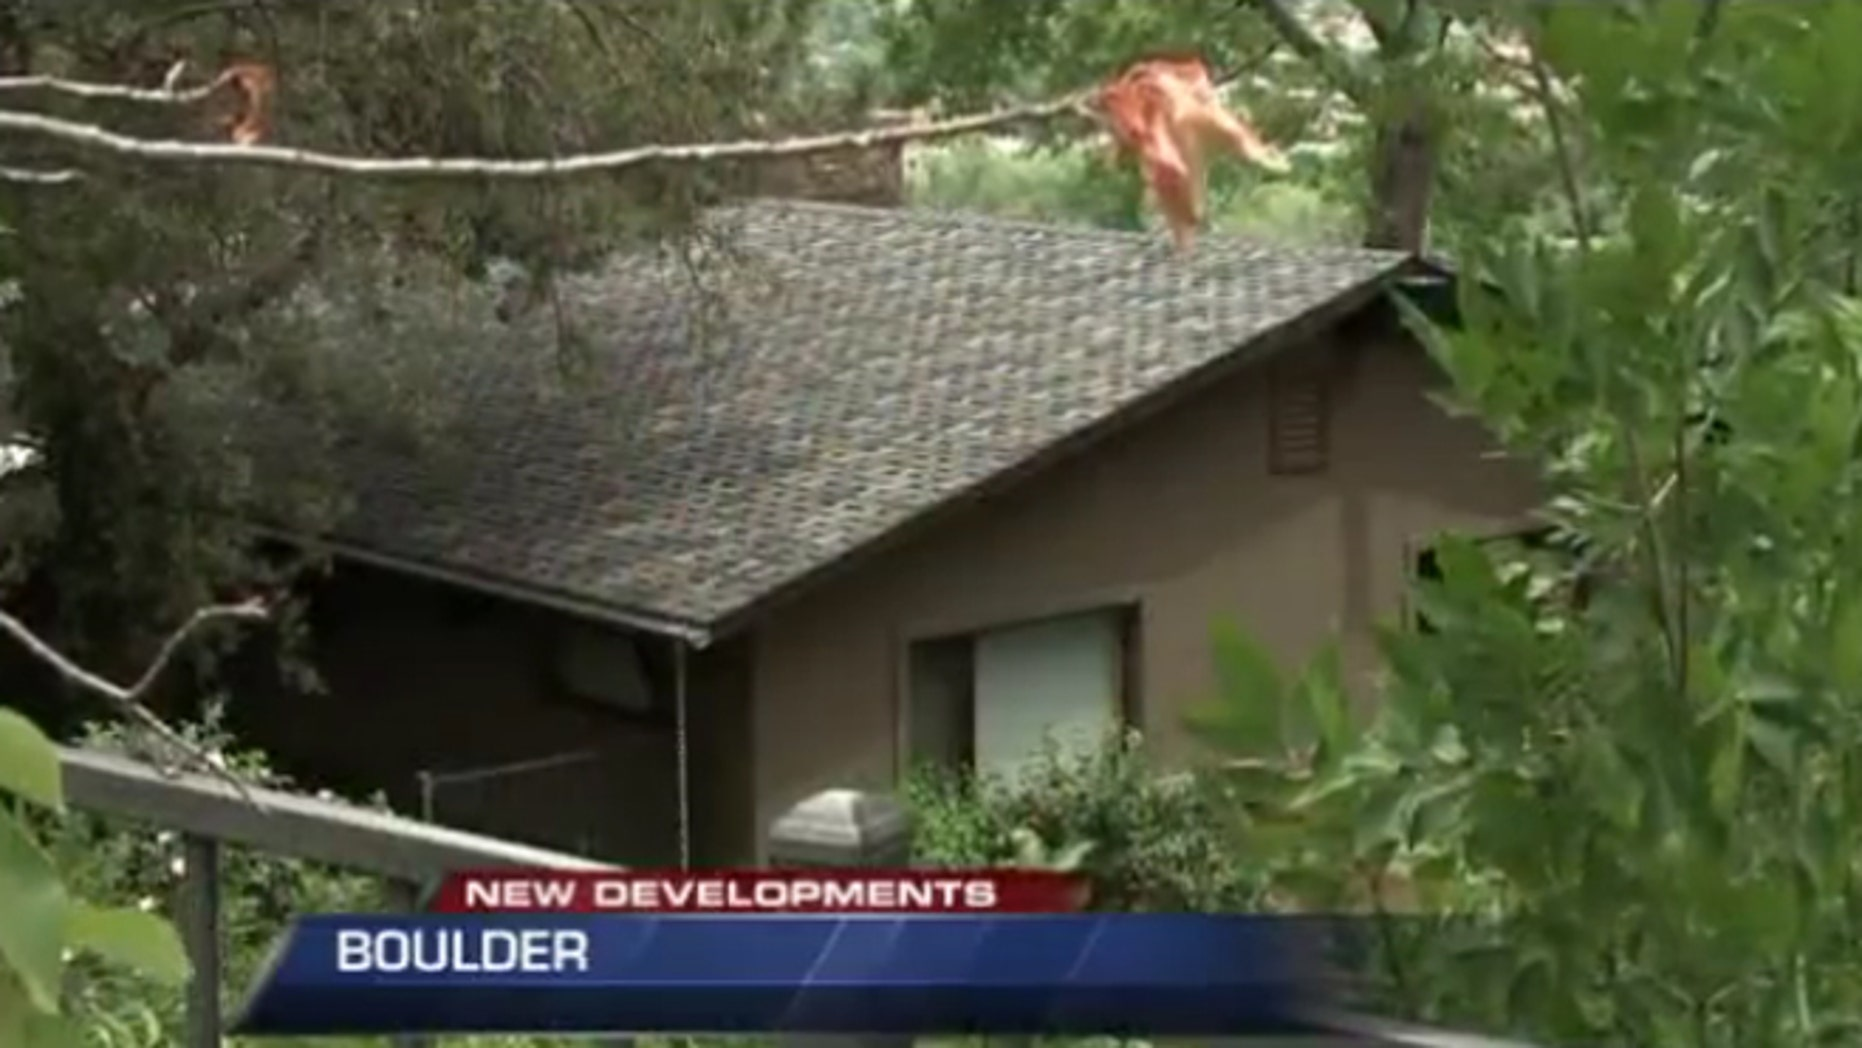 A recent University Colorado grad was shot after wandering into this house.